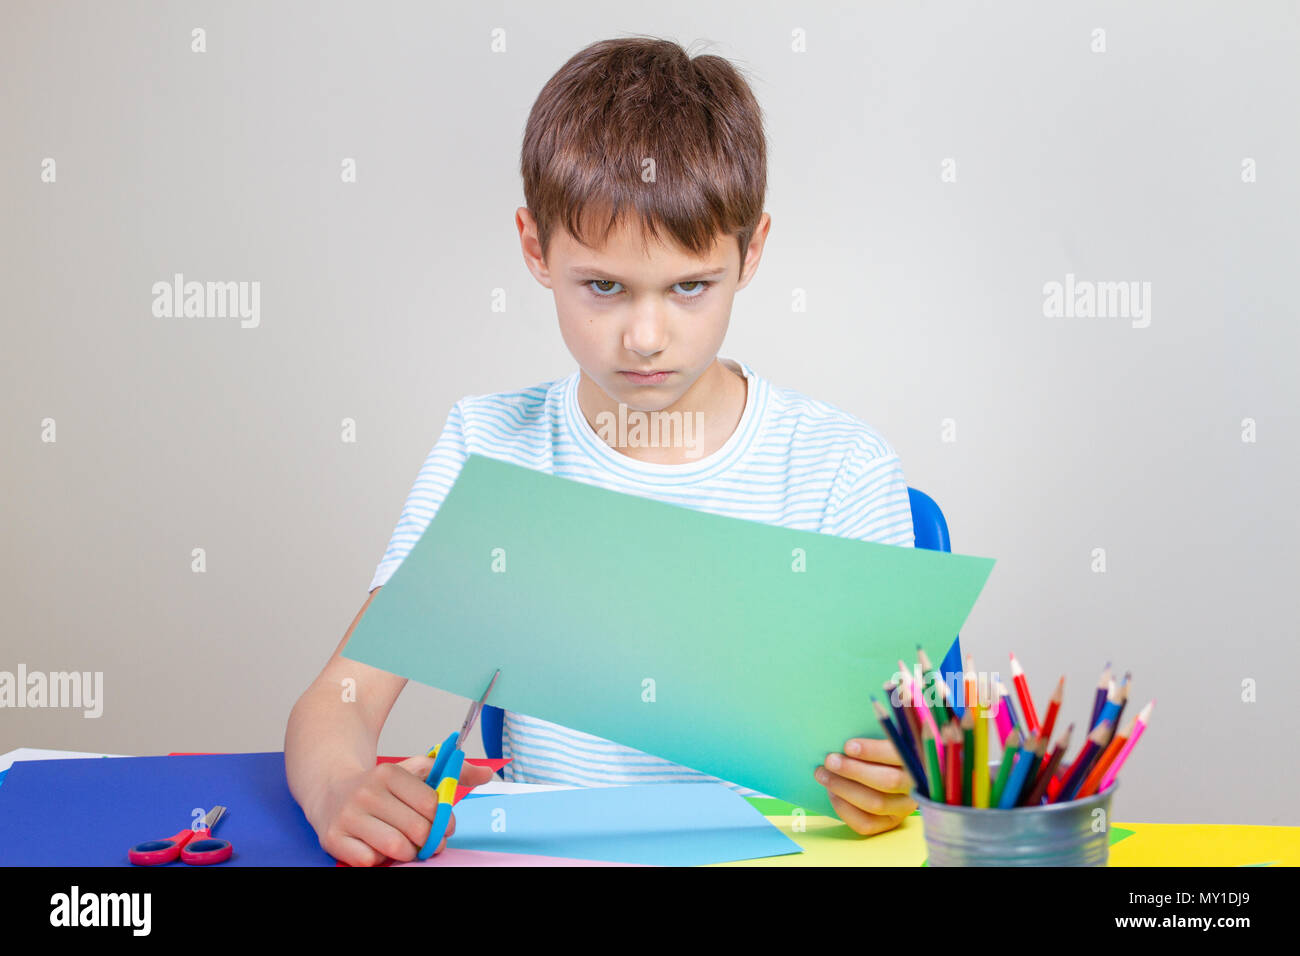 Angry child cutting colored paper with scissors at the table - Stock Image